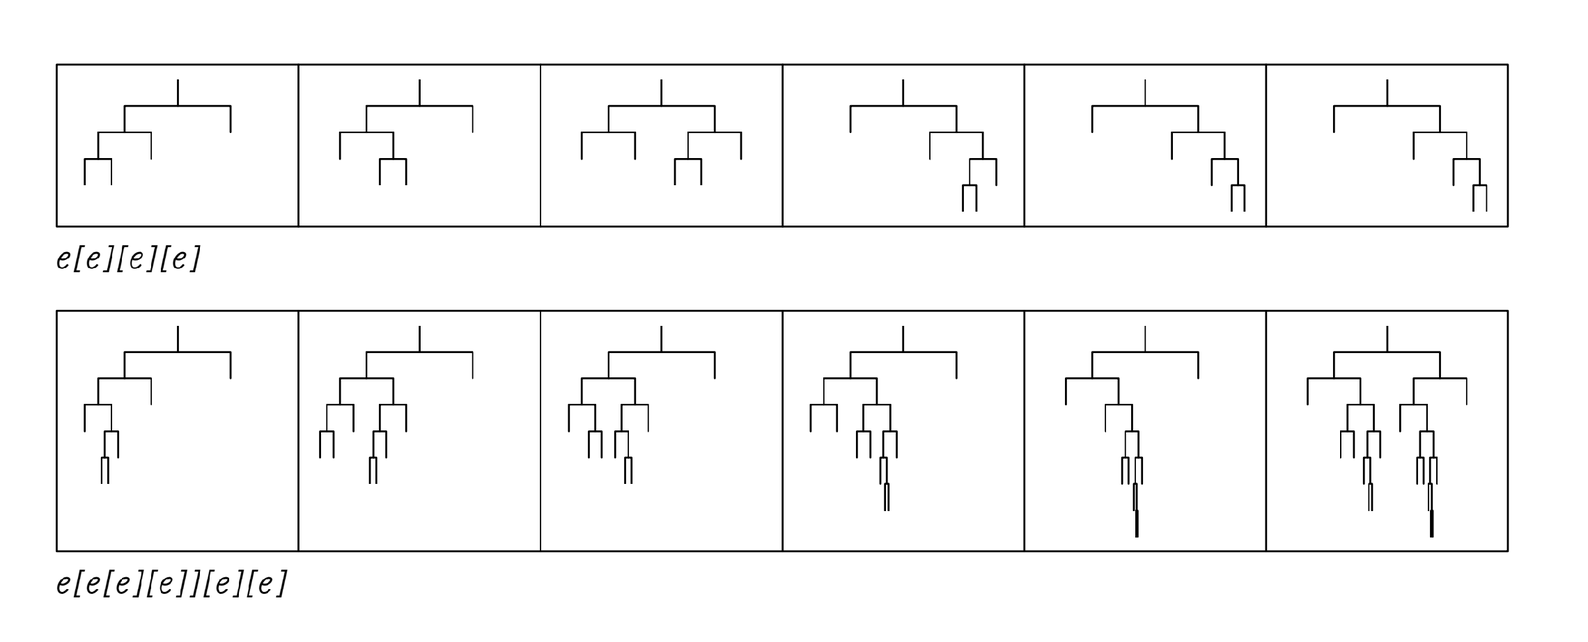 Trees [representation for symbolic systems] image 2